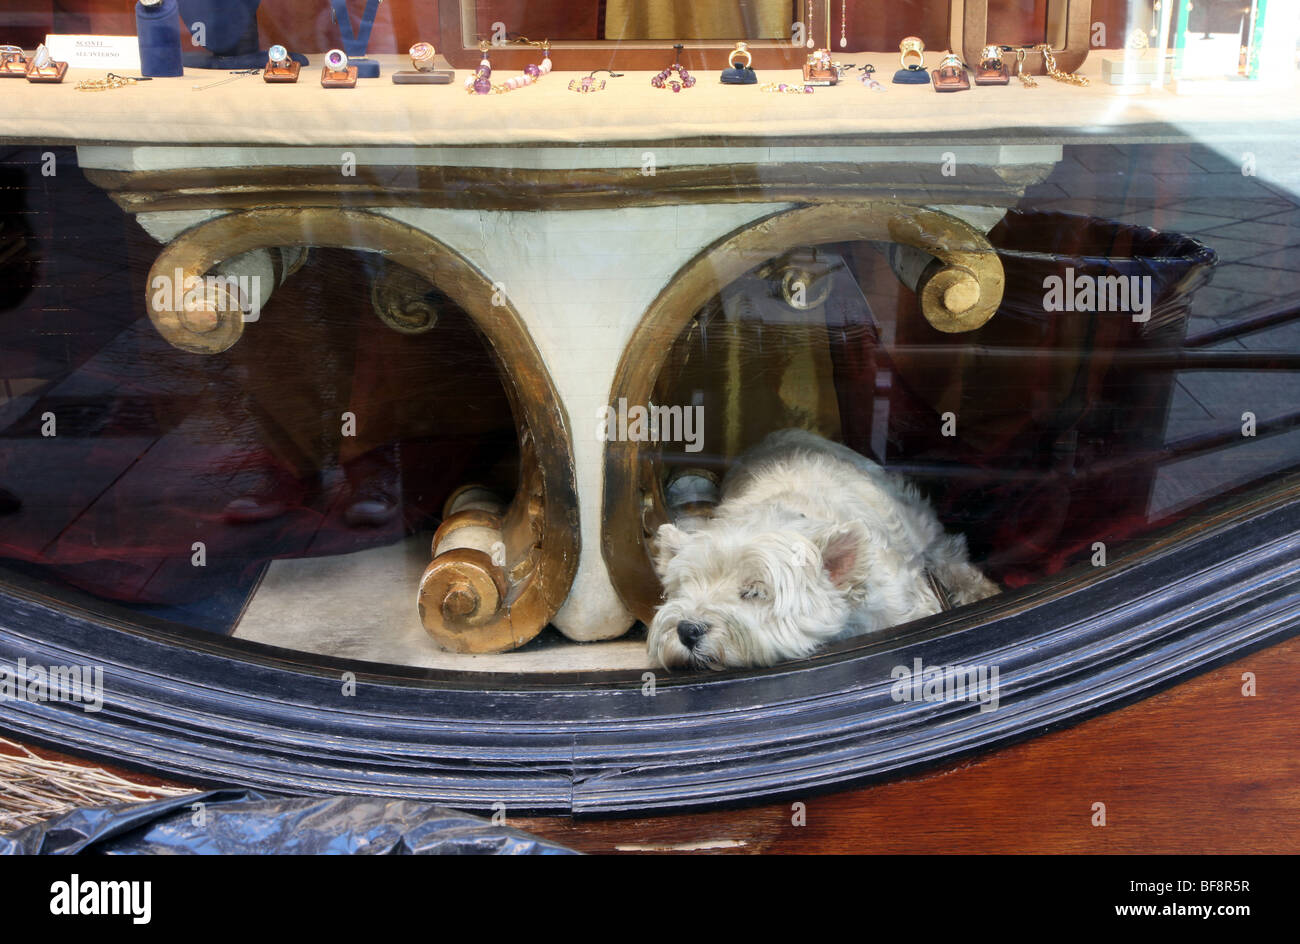 Dog in shop window, Lugano, Ticino - Stock Image